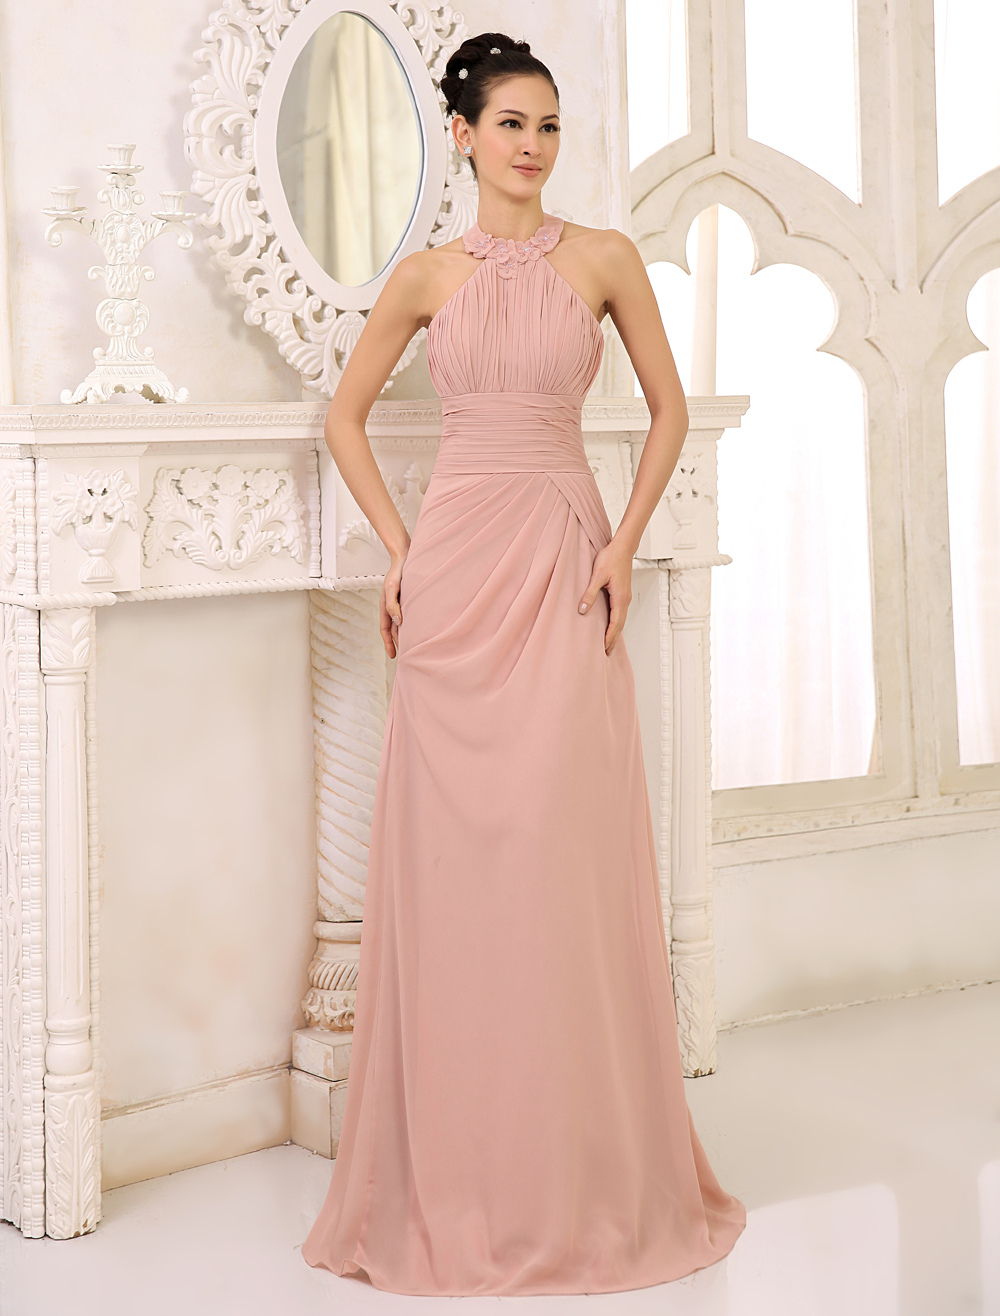 Blush Pink Bridesmaid Dresses Long Halter Chiffon Pleated Draped Floor Length Wedding Party Dresses